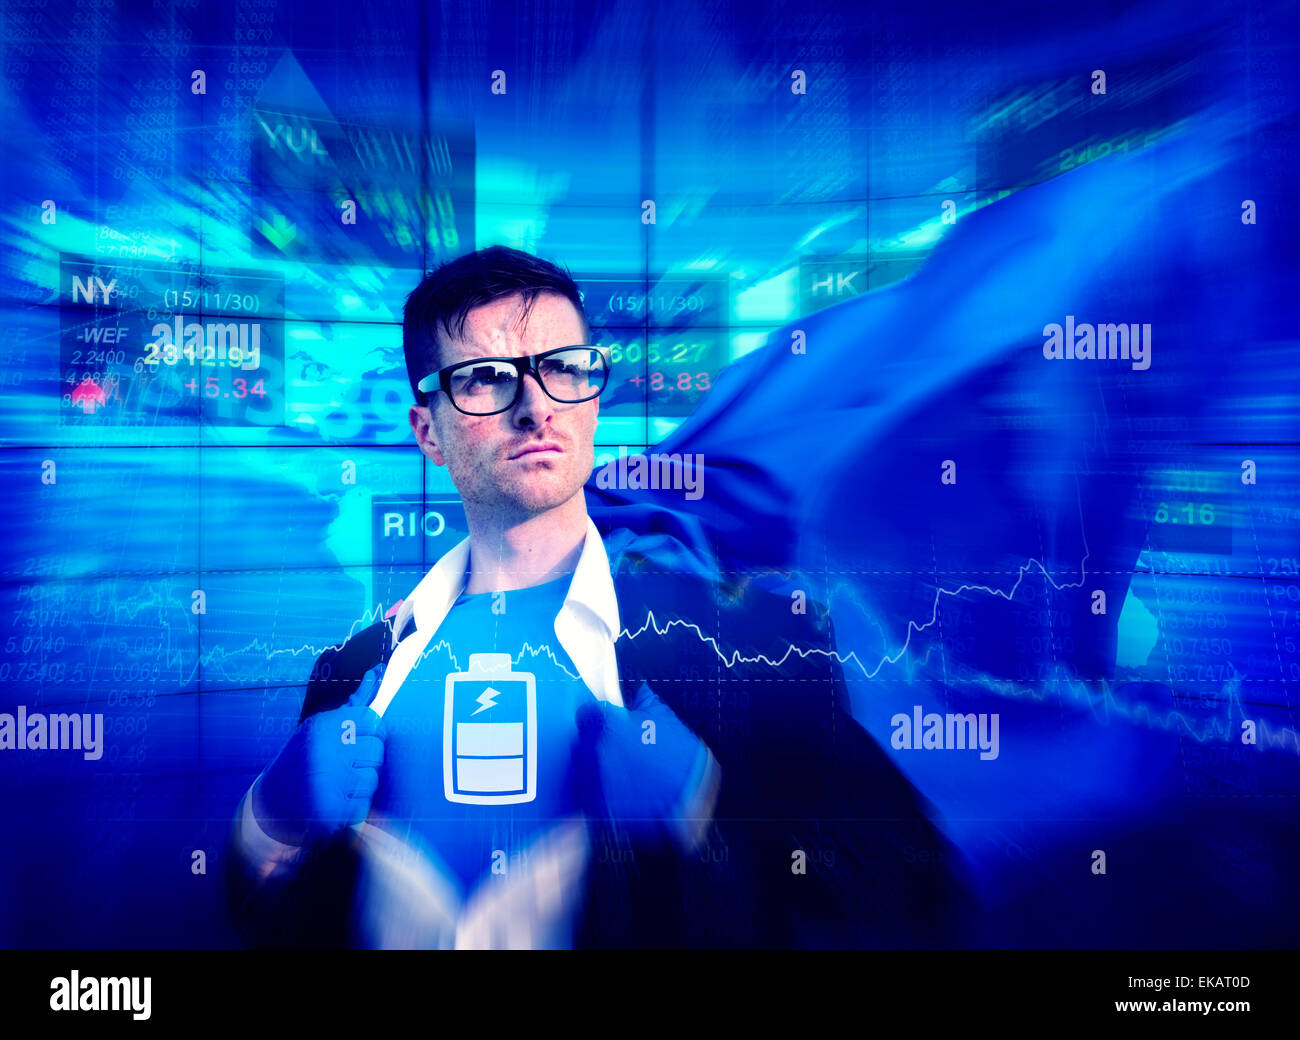 Battery Strong Superhero Success Professional Empowerment Stock Concept - Stock Image